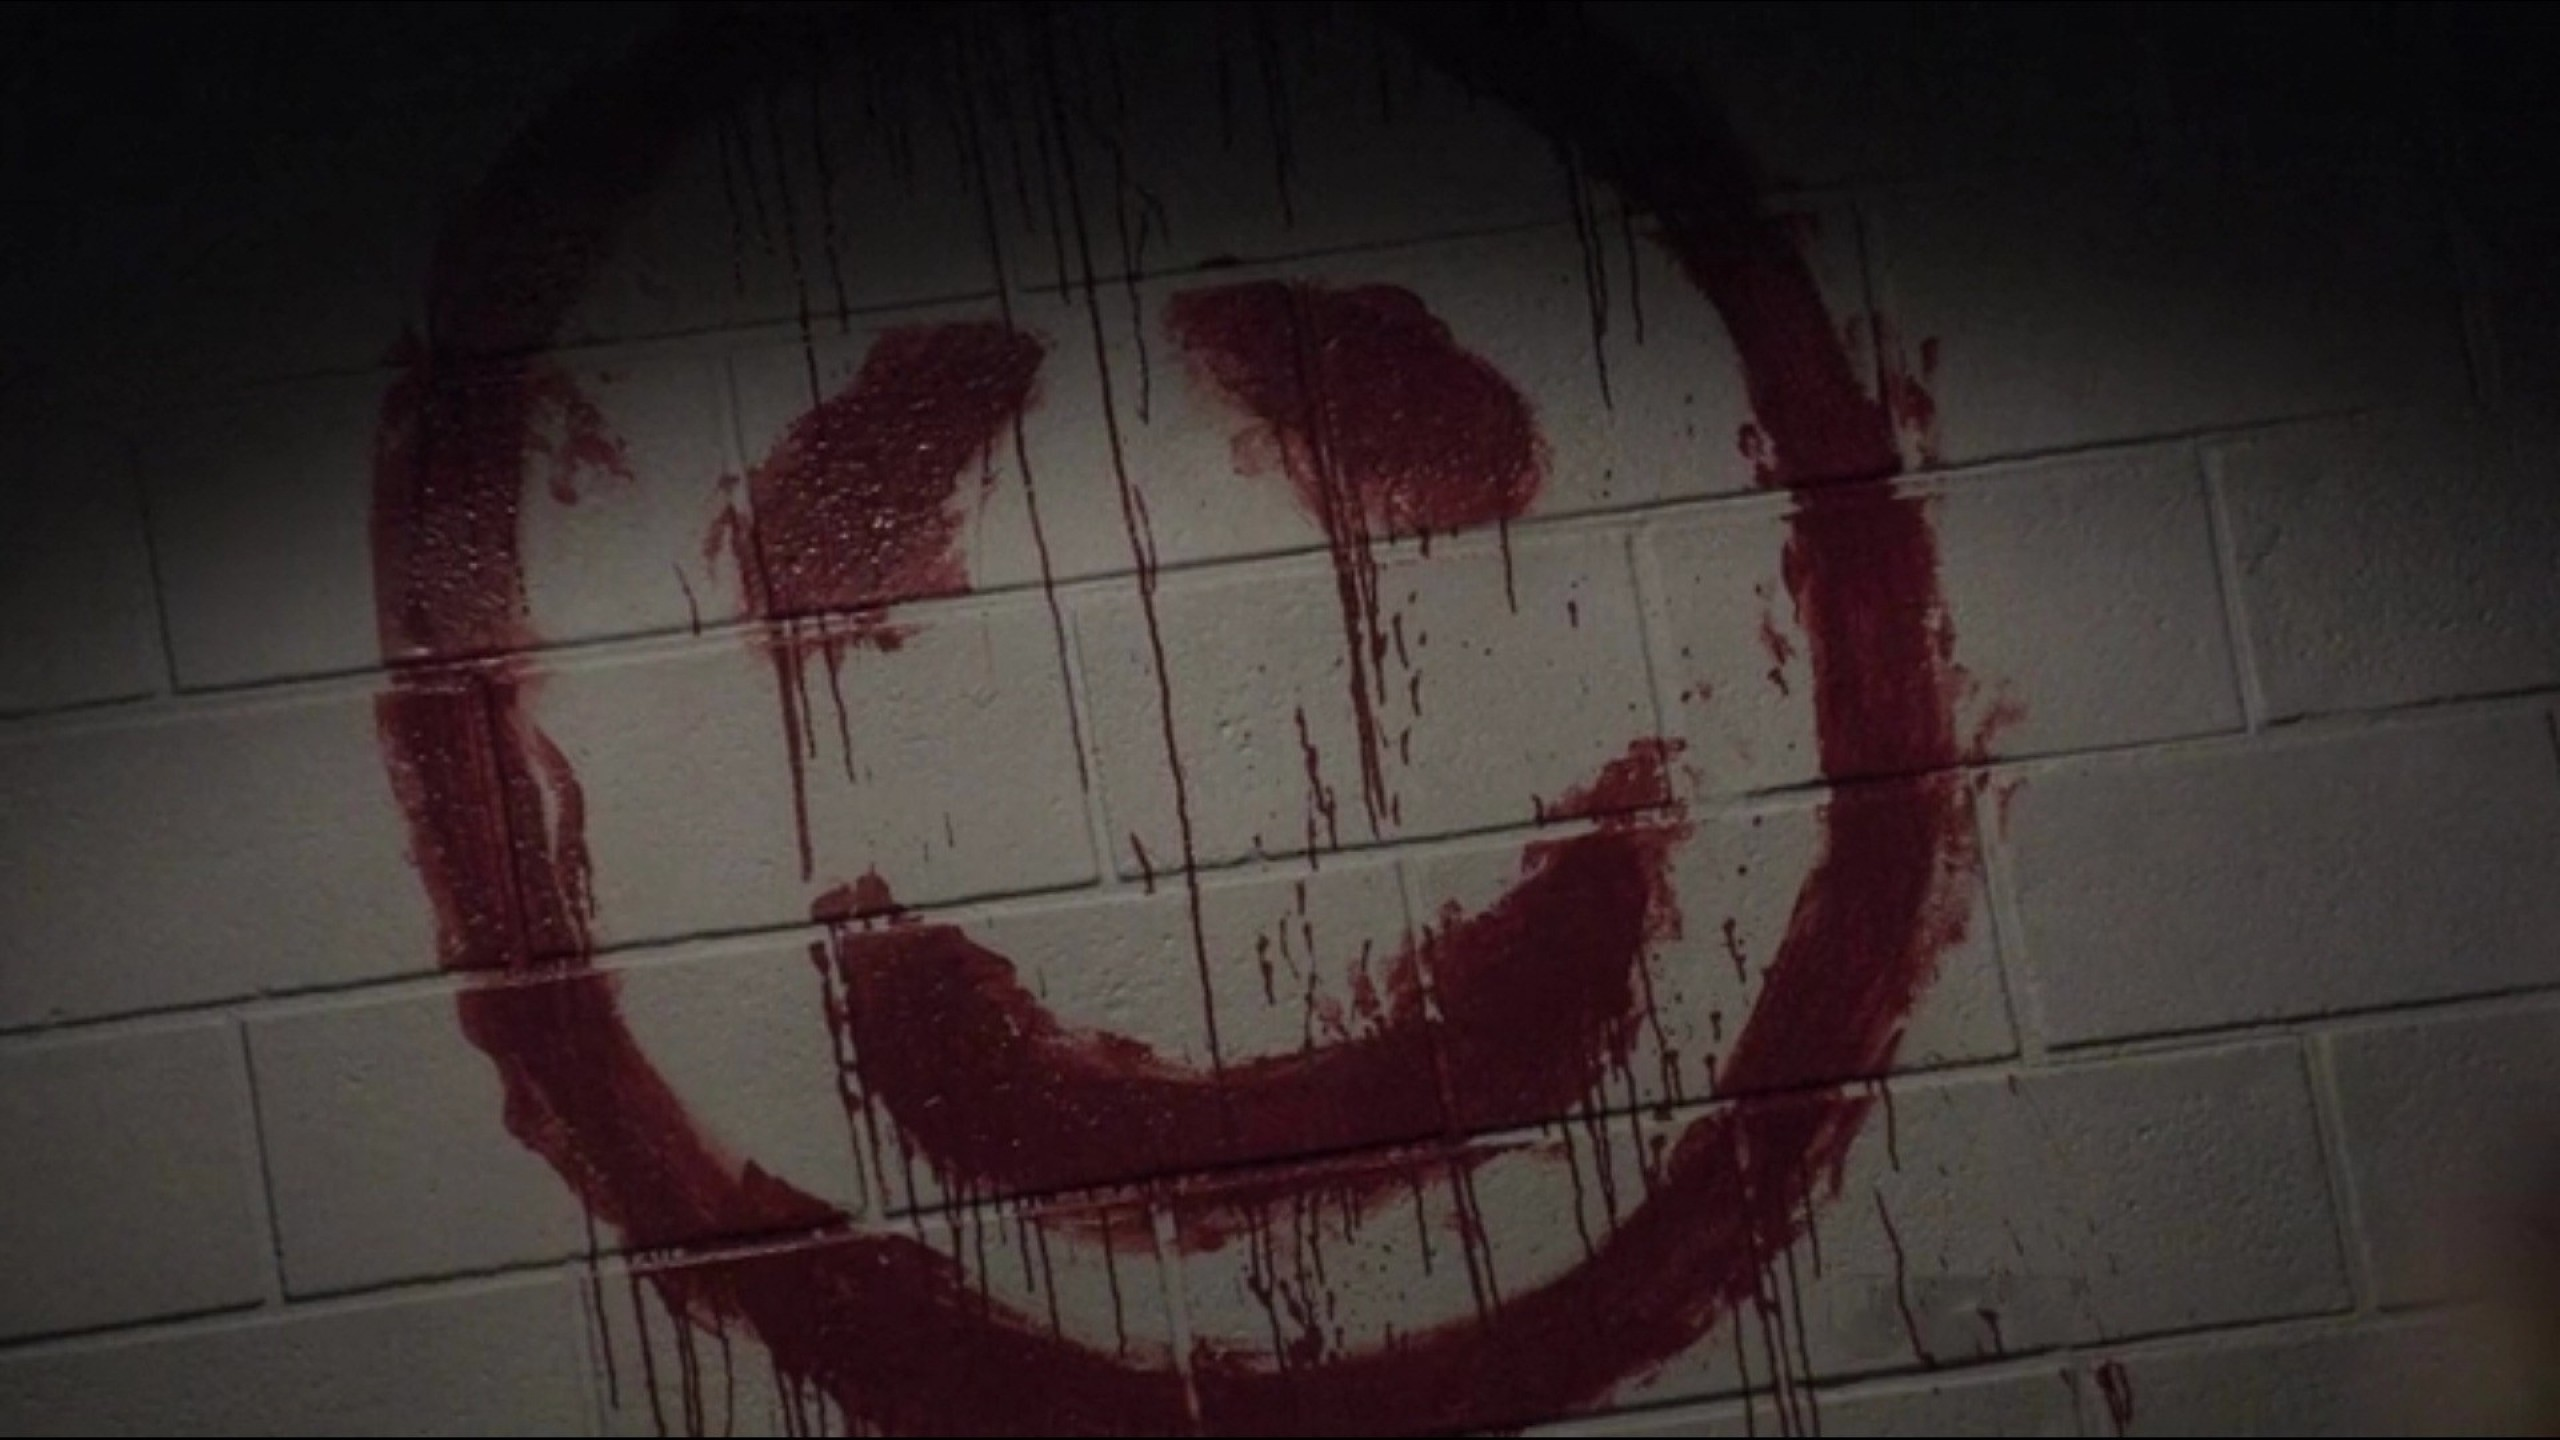 Big Smiles: The Legacy of the Unsolved Smiley Face Killer